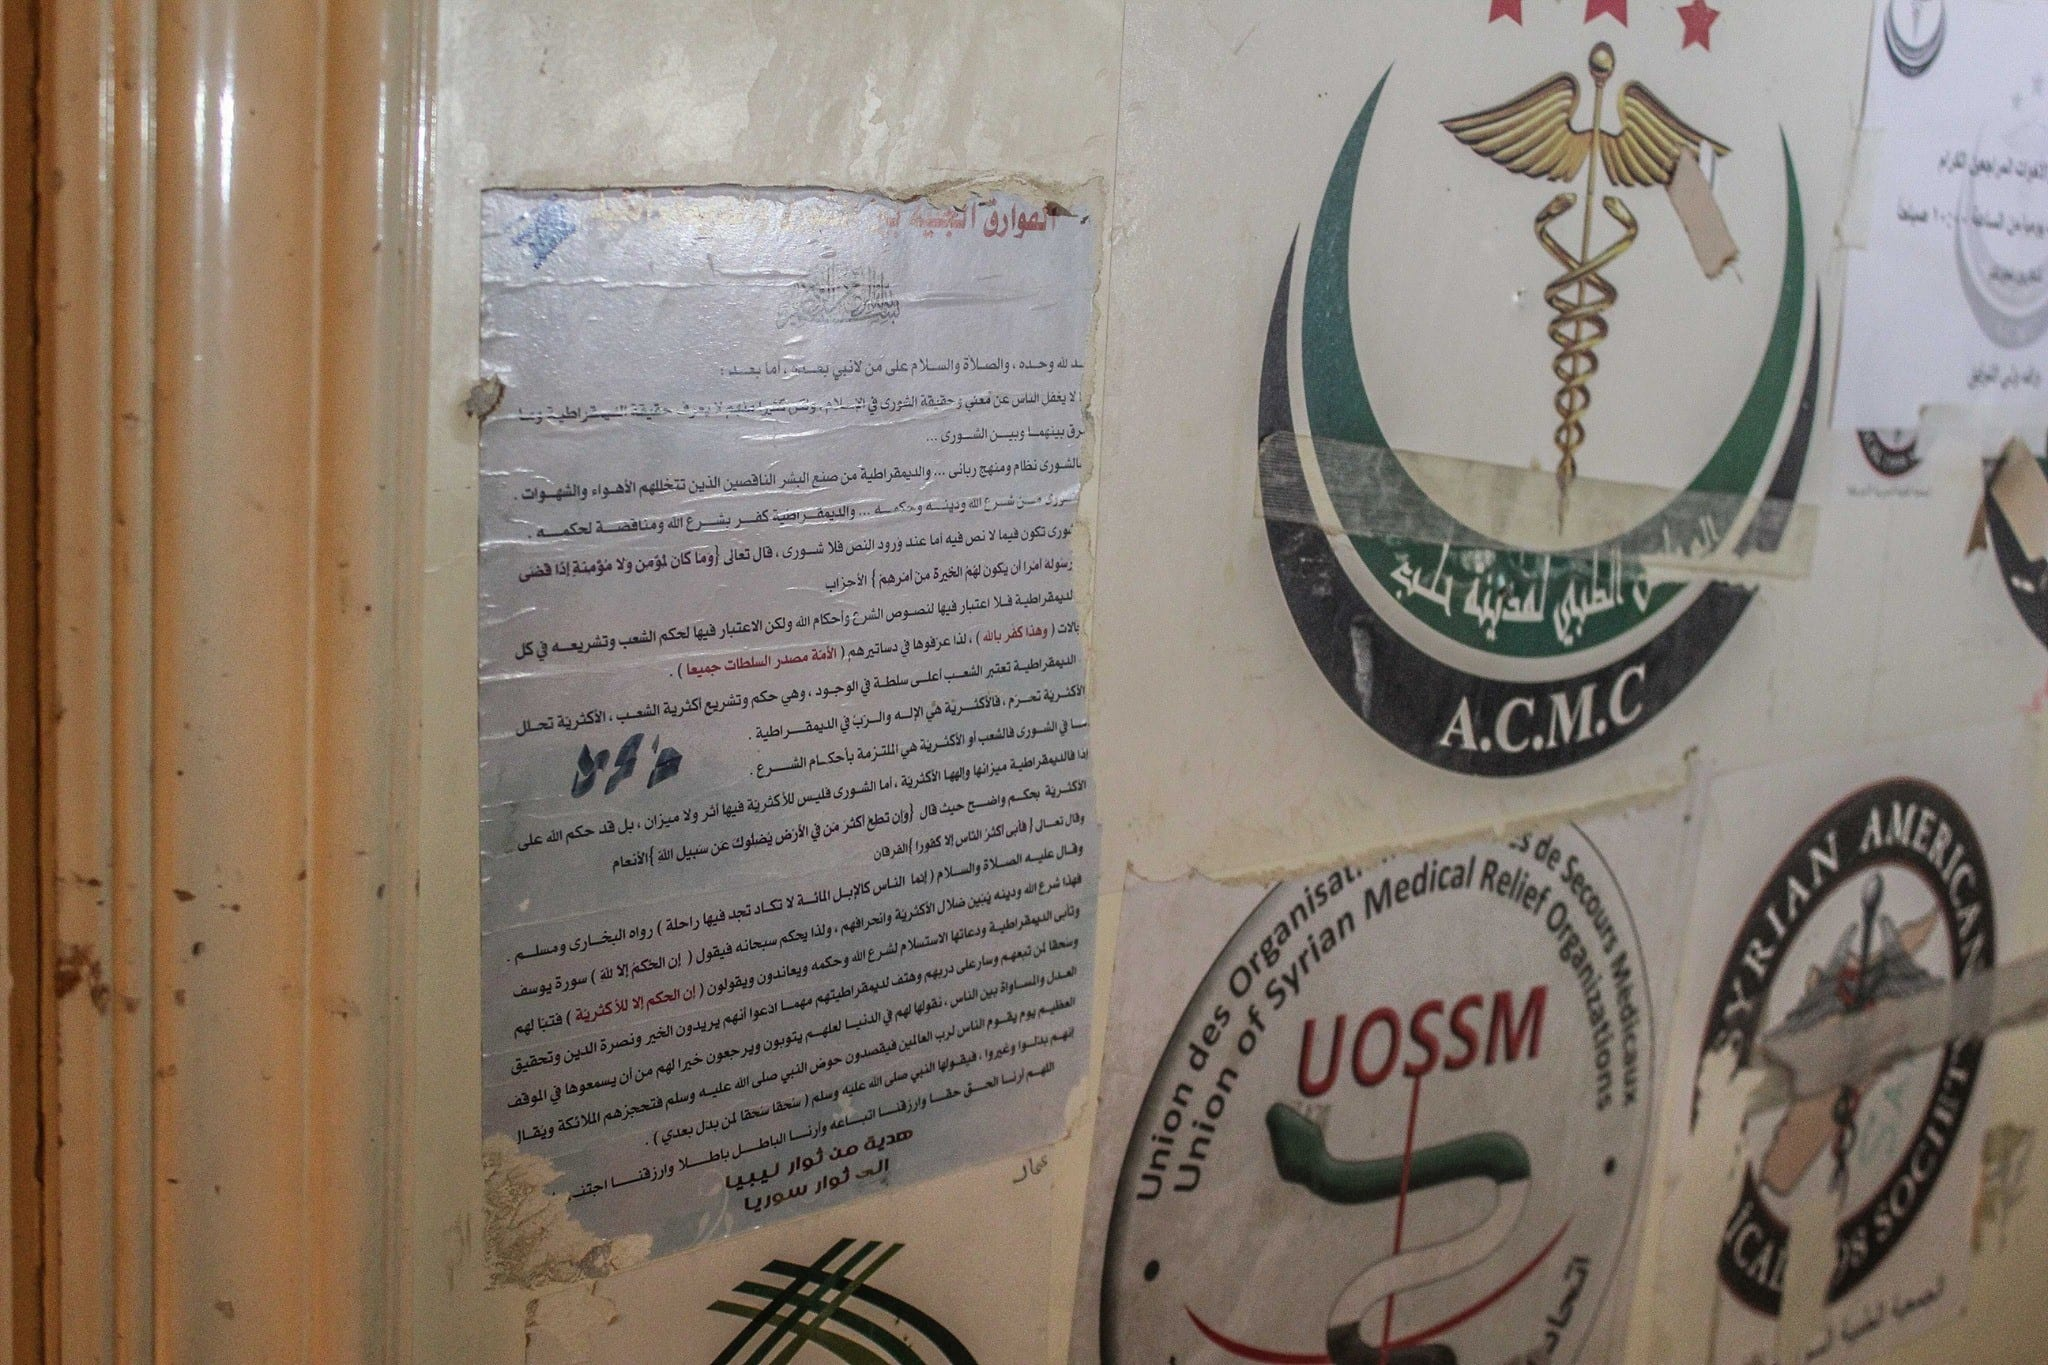 al-Nusra-controlled East Aleppo. Pictured are logos of SAM and UOSSM